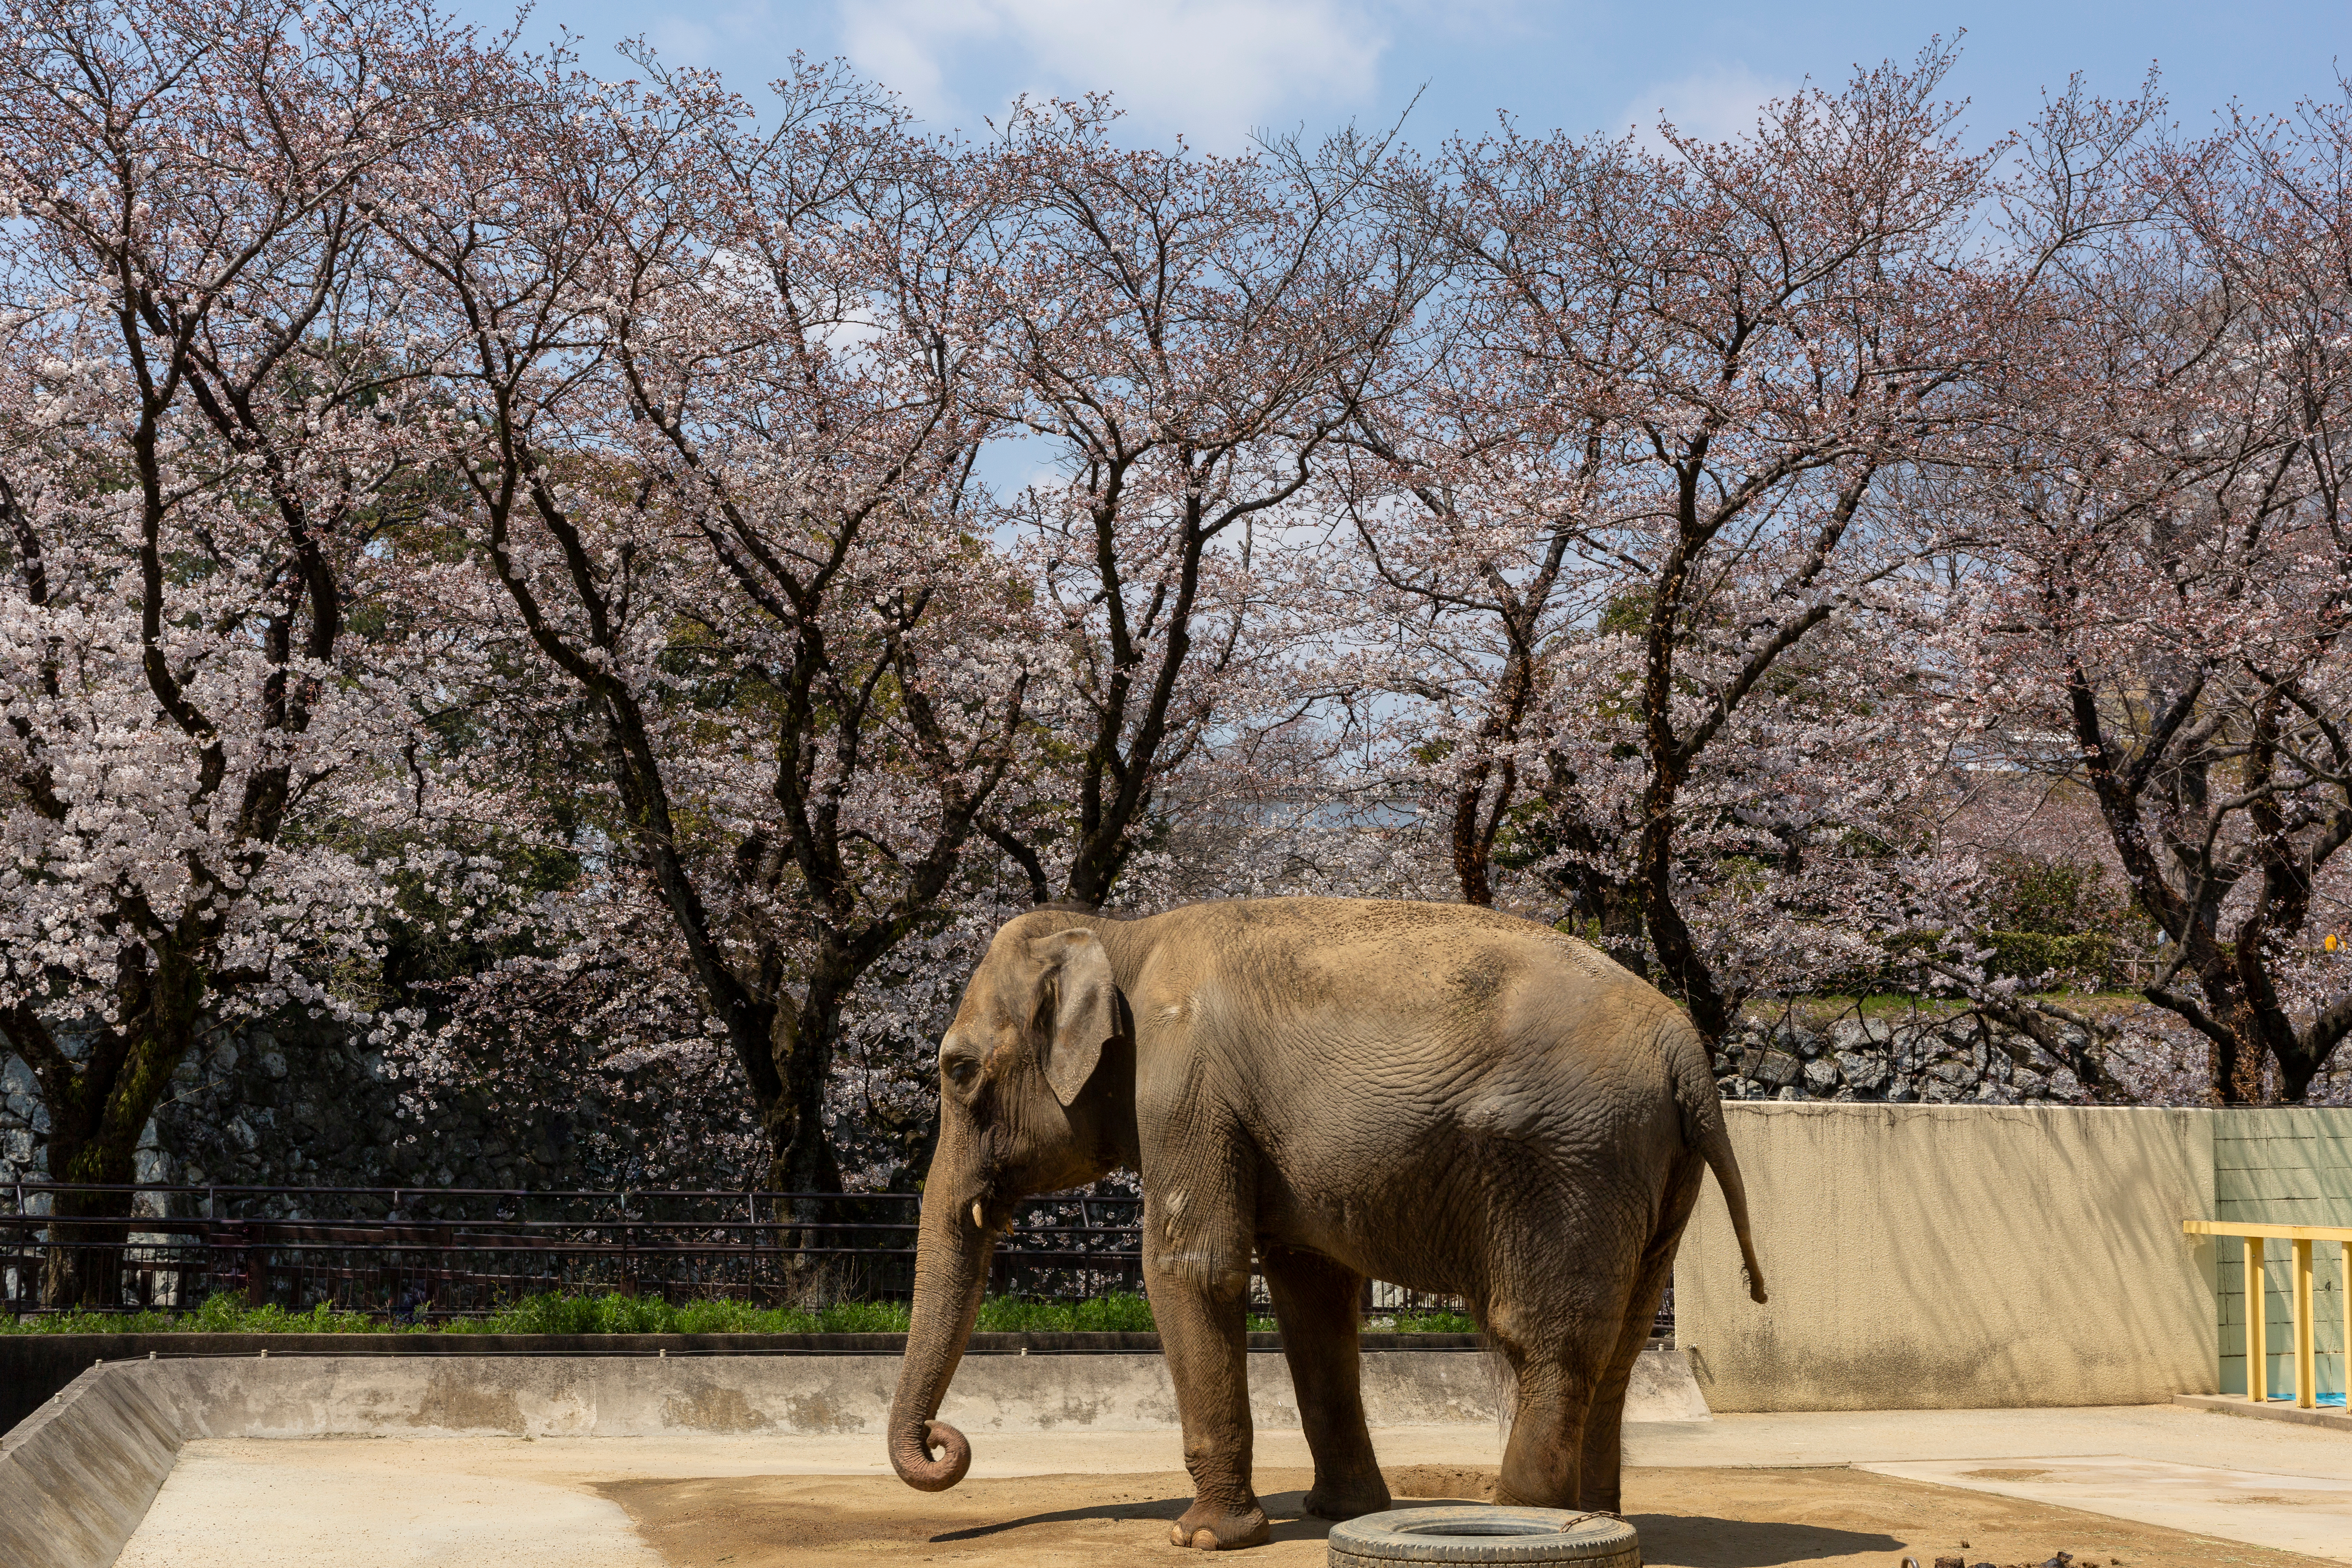 Petition: Save Himeko, Depressed Elephant Who's Been Alone in a Zoo for 24 Years